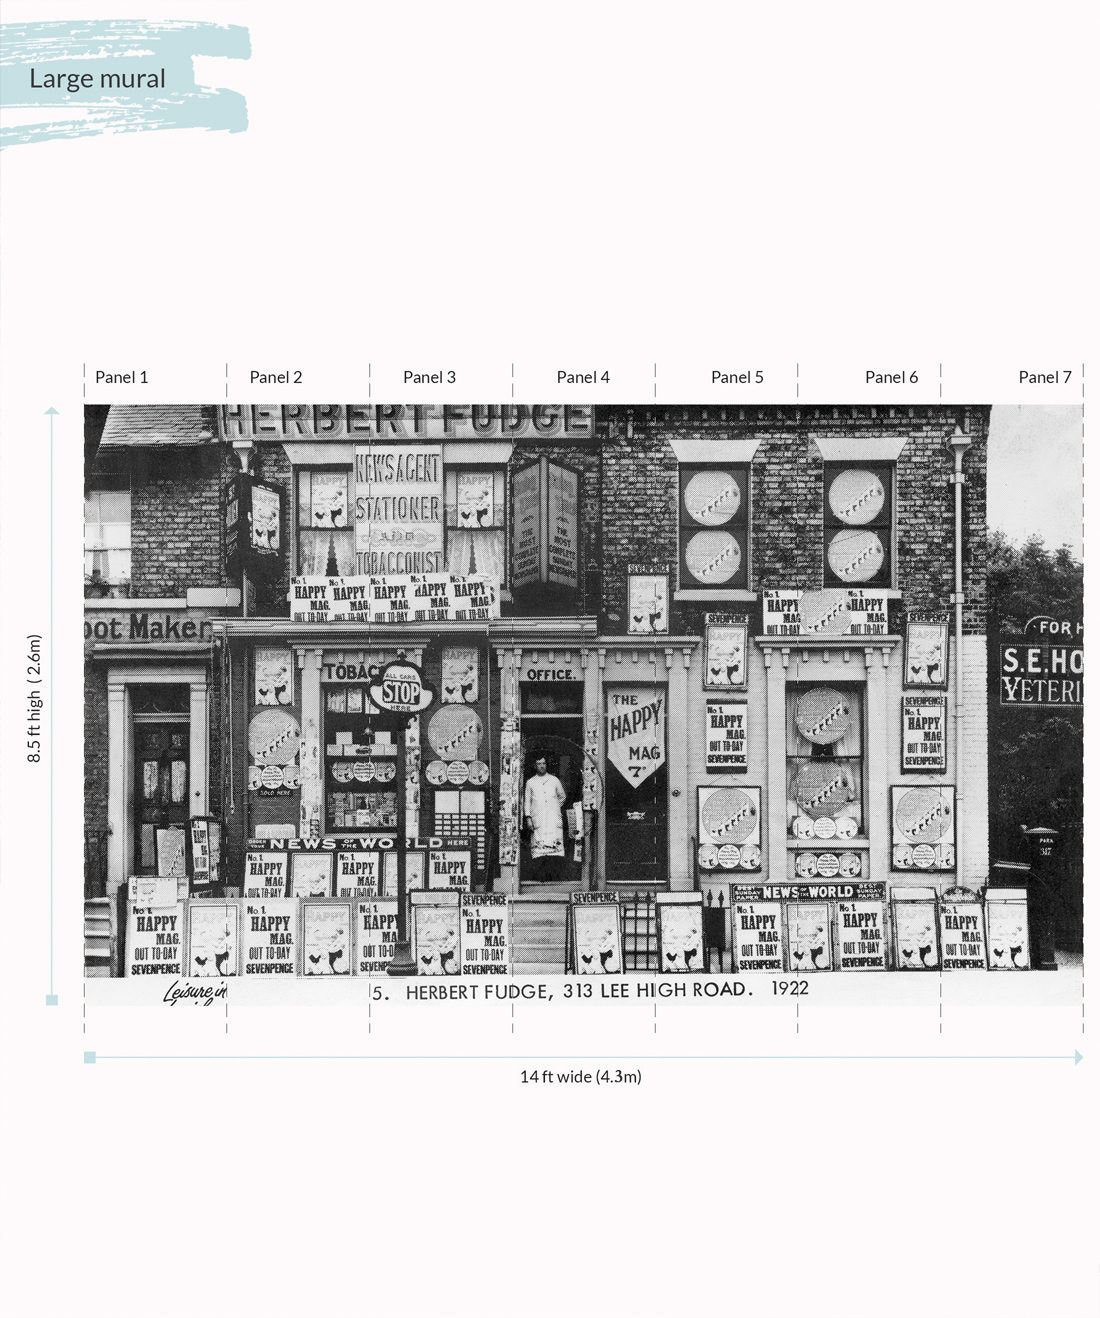 Herberts Off license Wall Mural - Large